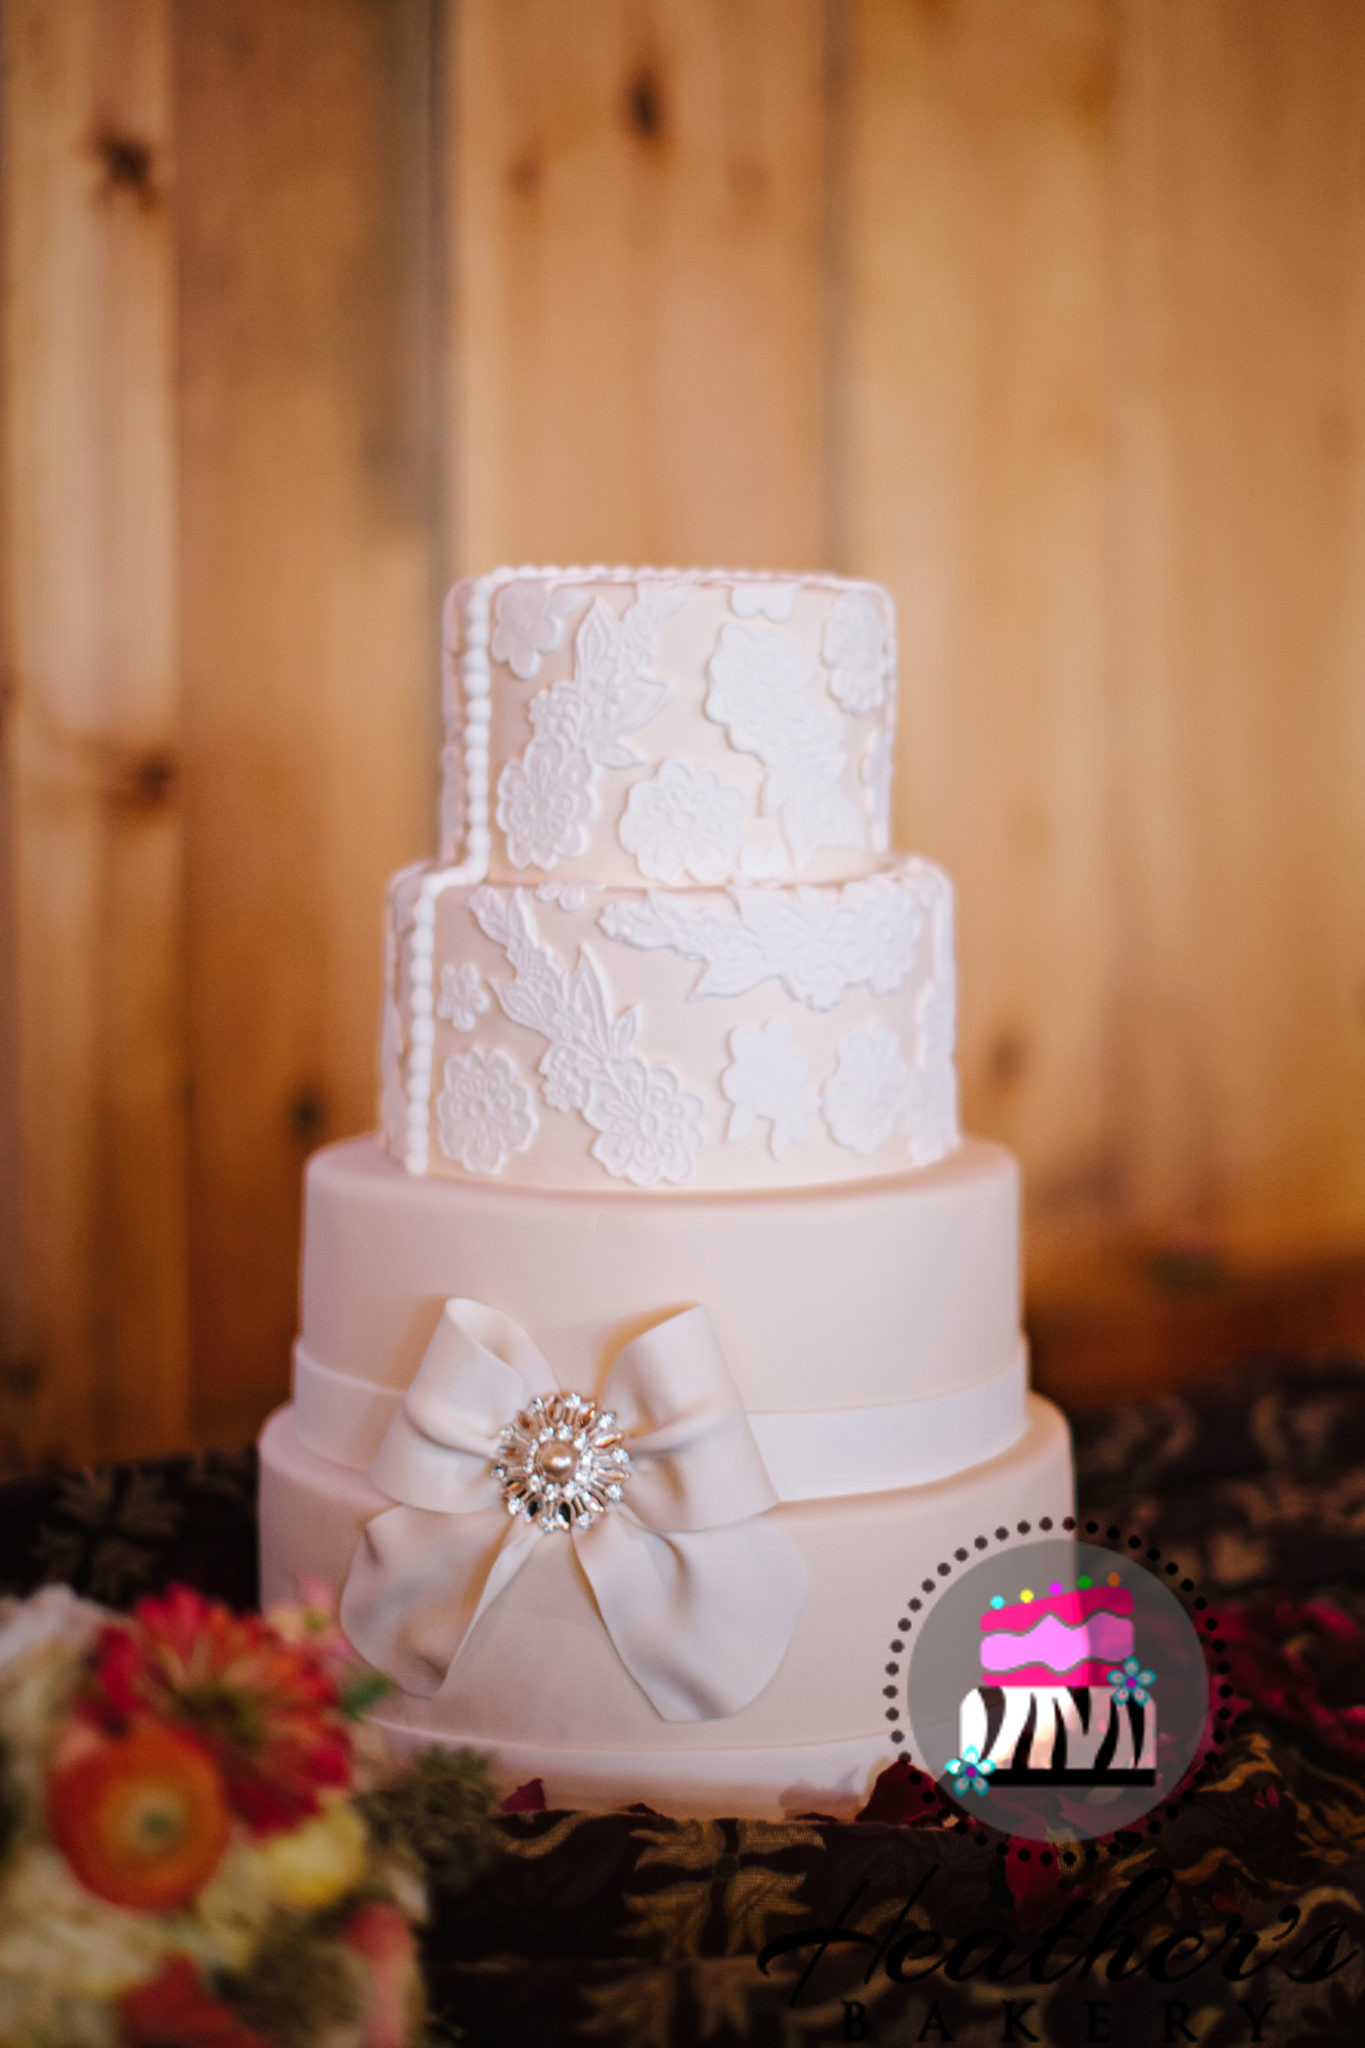 Lace & Bow Elegant Wedding Cake